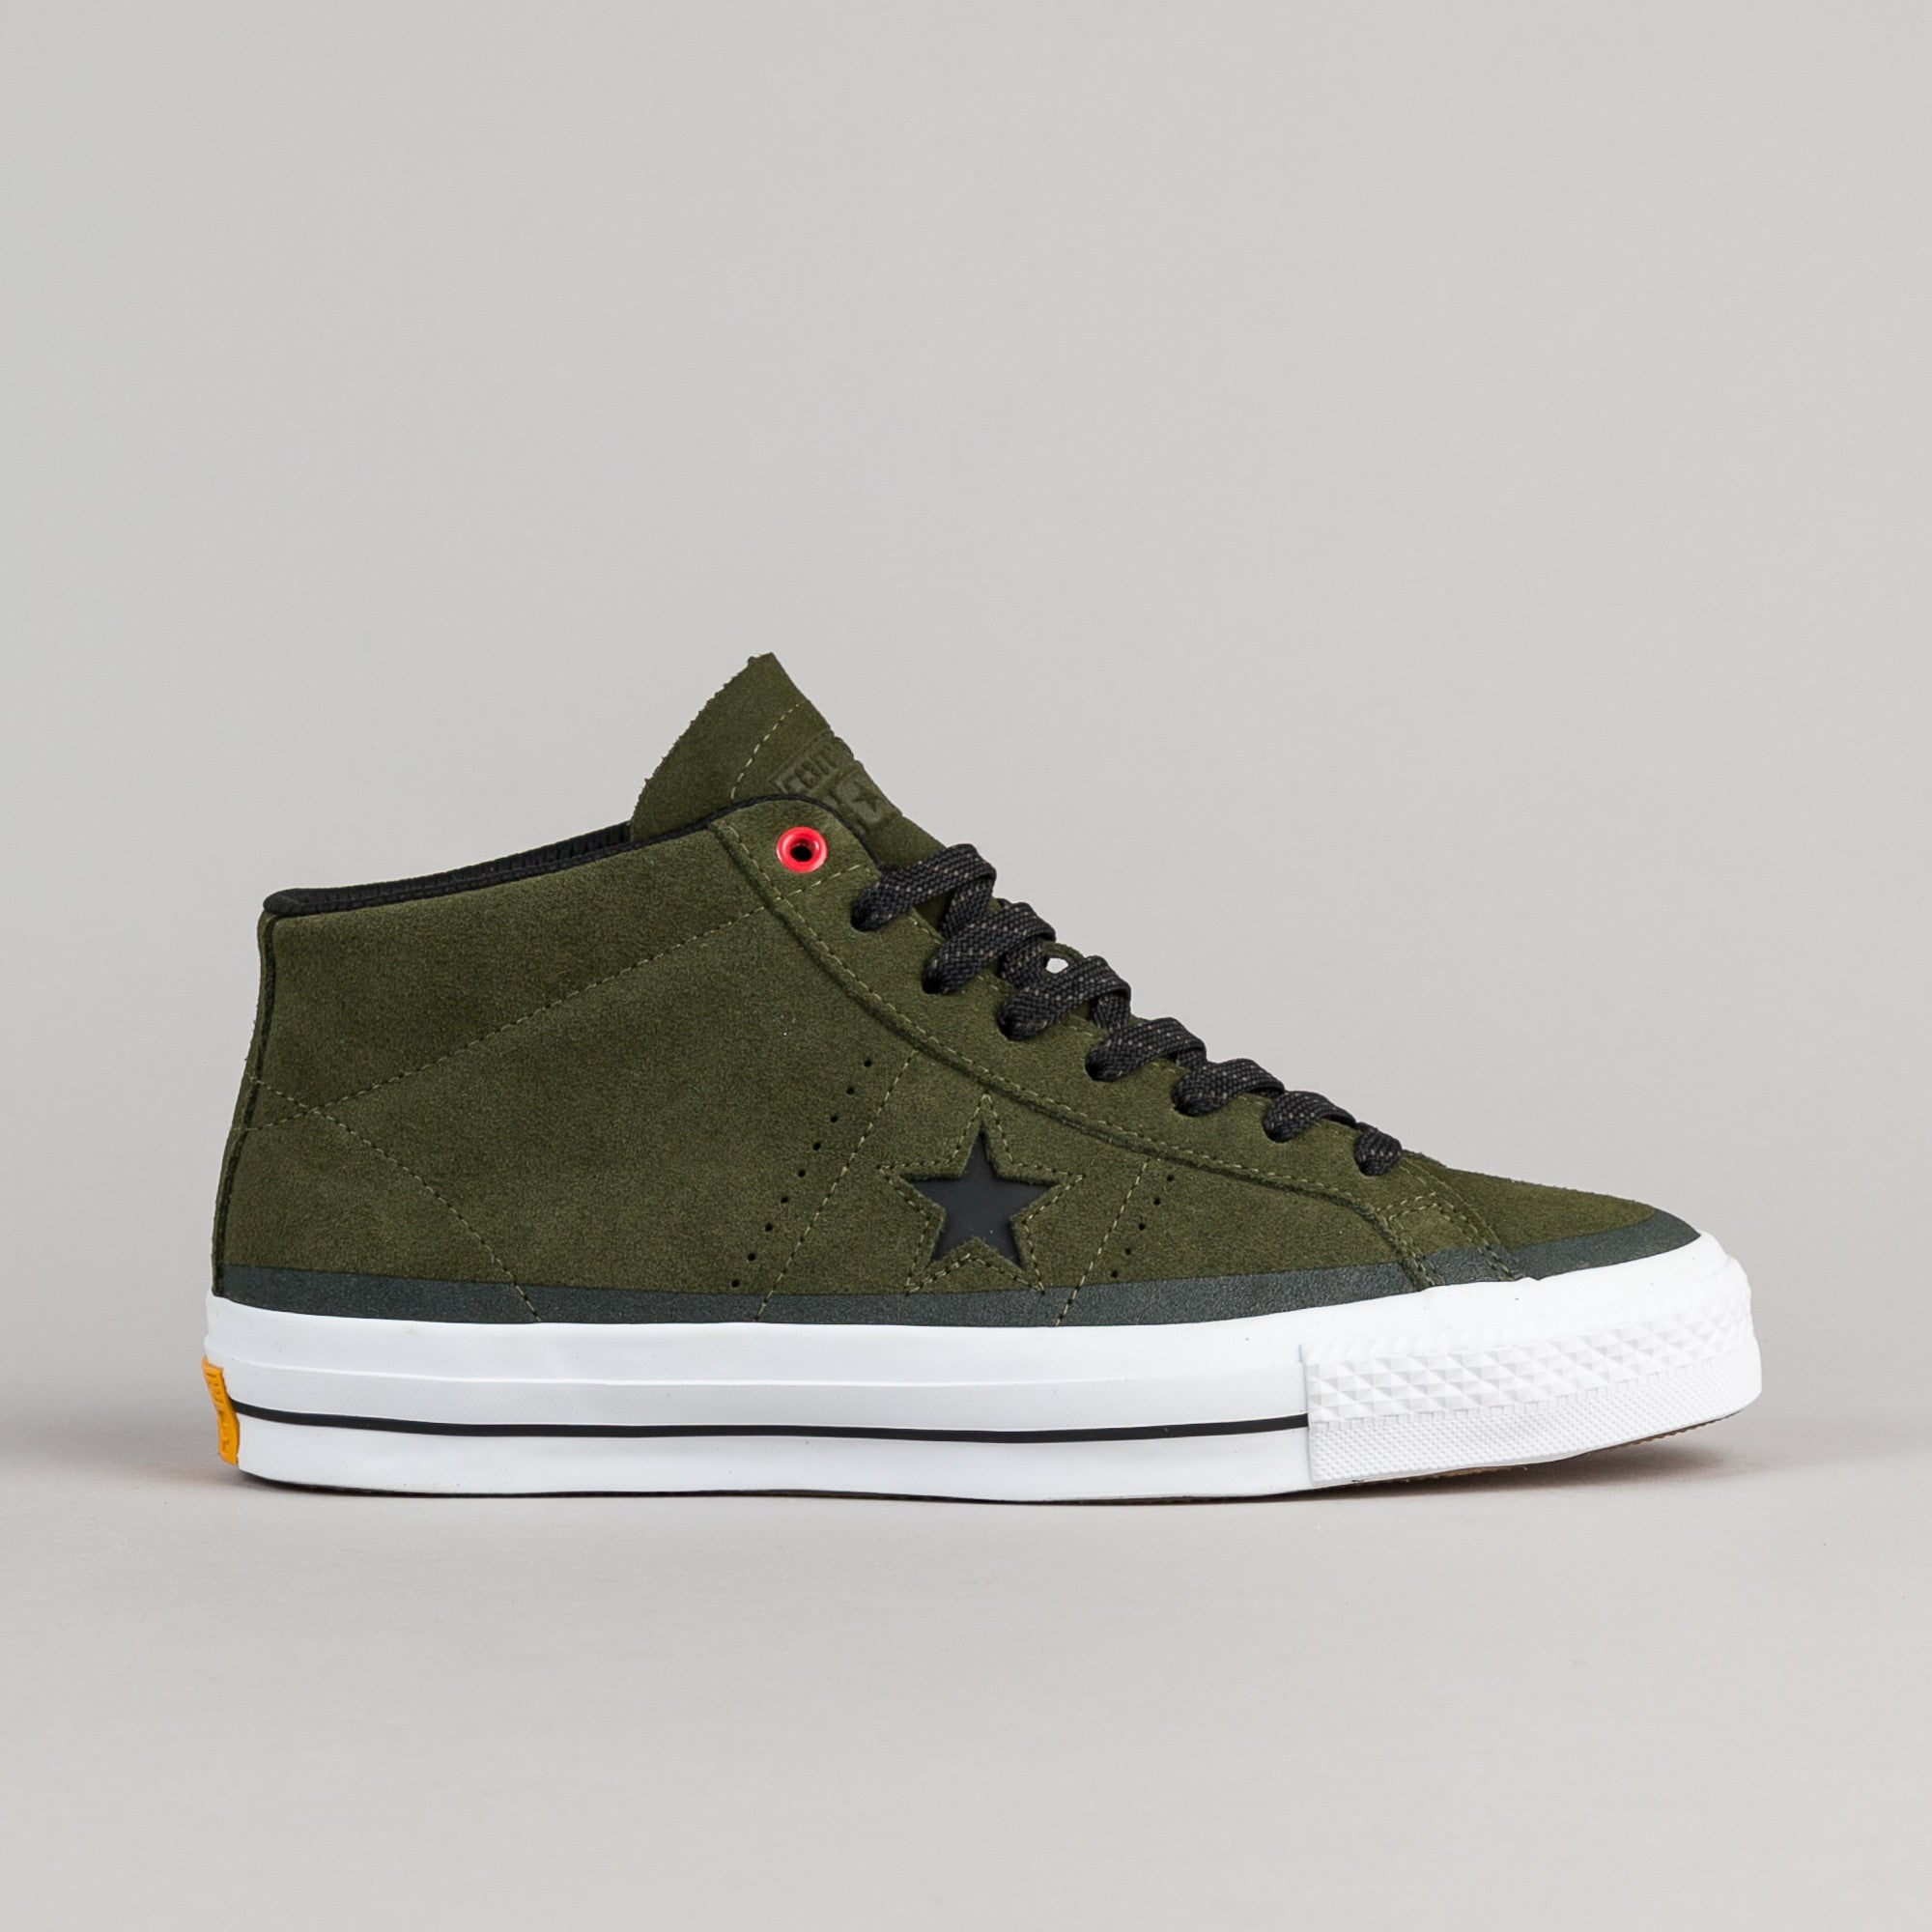 ... Converse One Star Pro Suede Mid Shoes - Herbal / Black / White ...